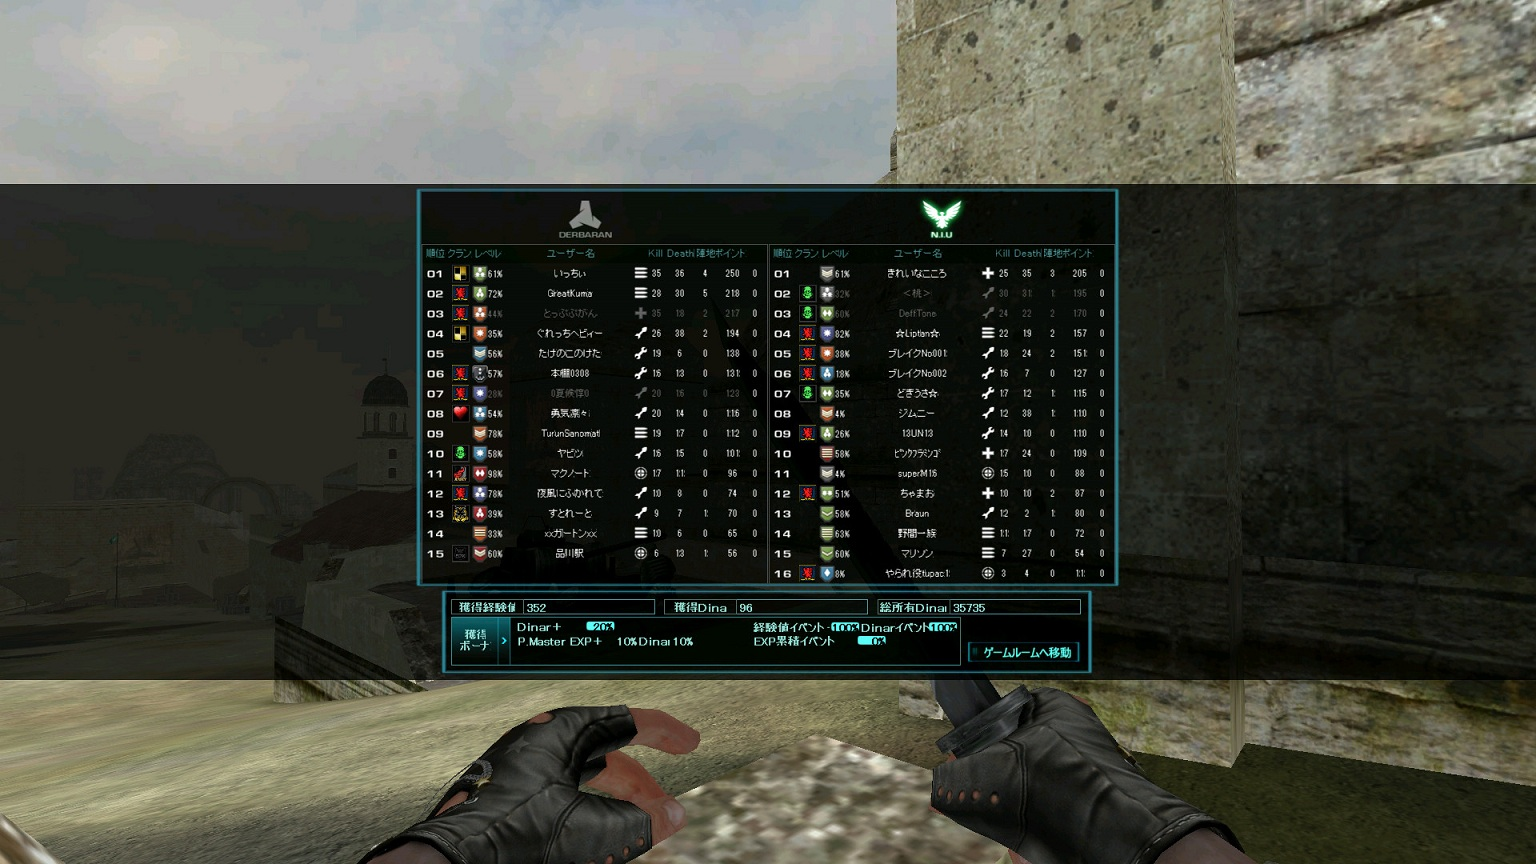 screenshot_009.jpg